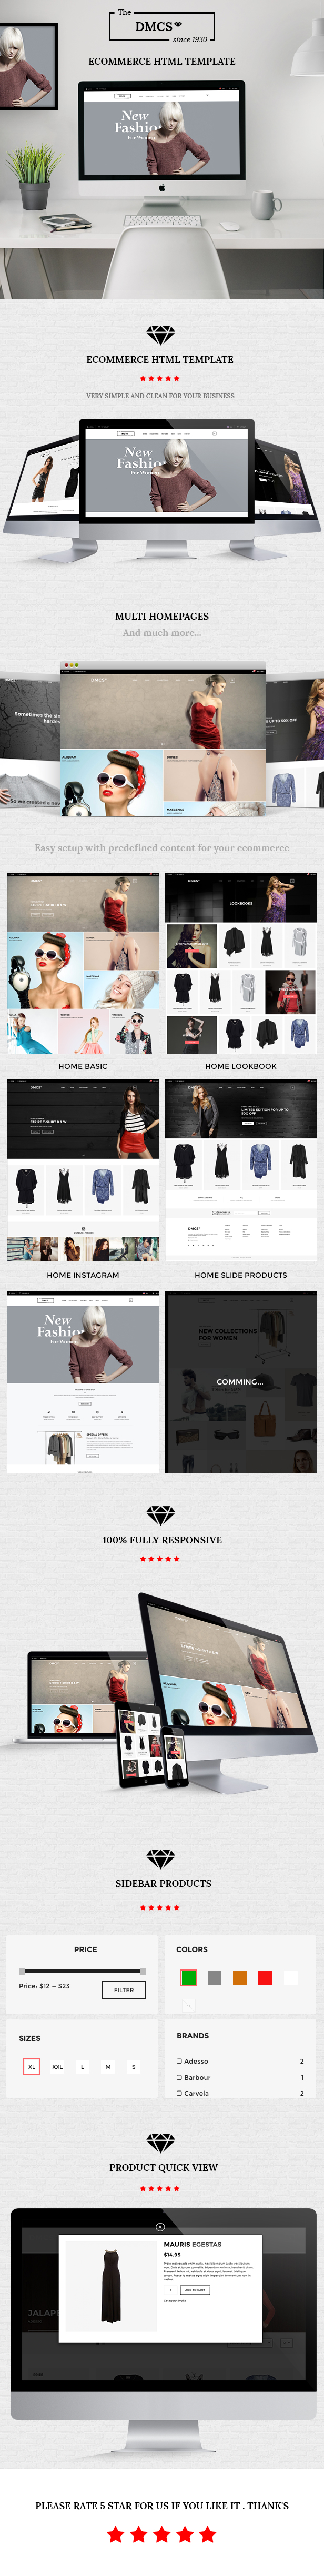 The DMCS - Ecommerce HTML Responsive Template by Kavindesign ...